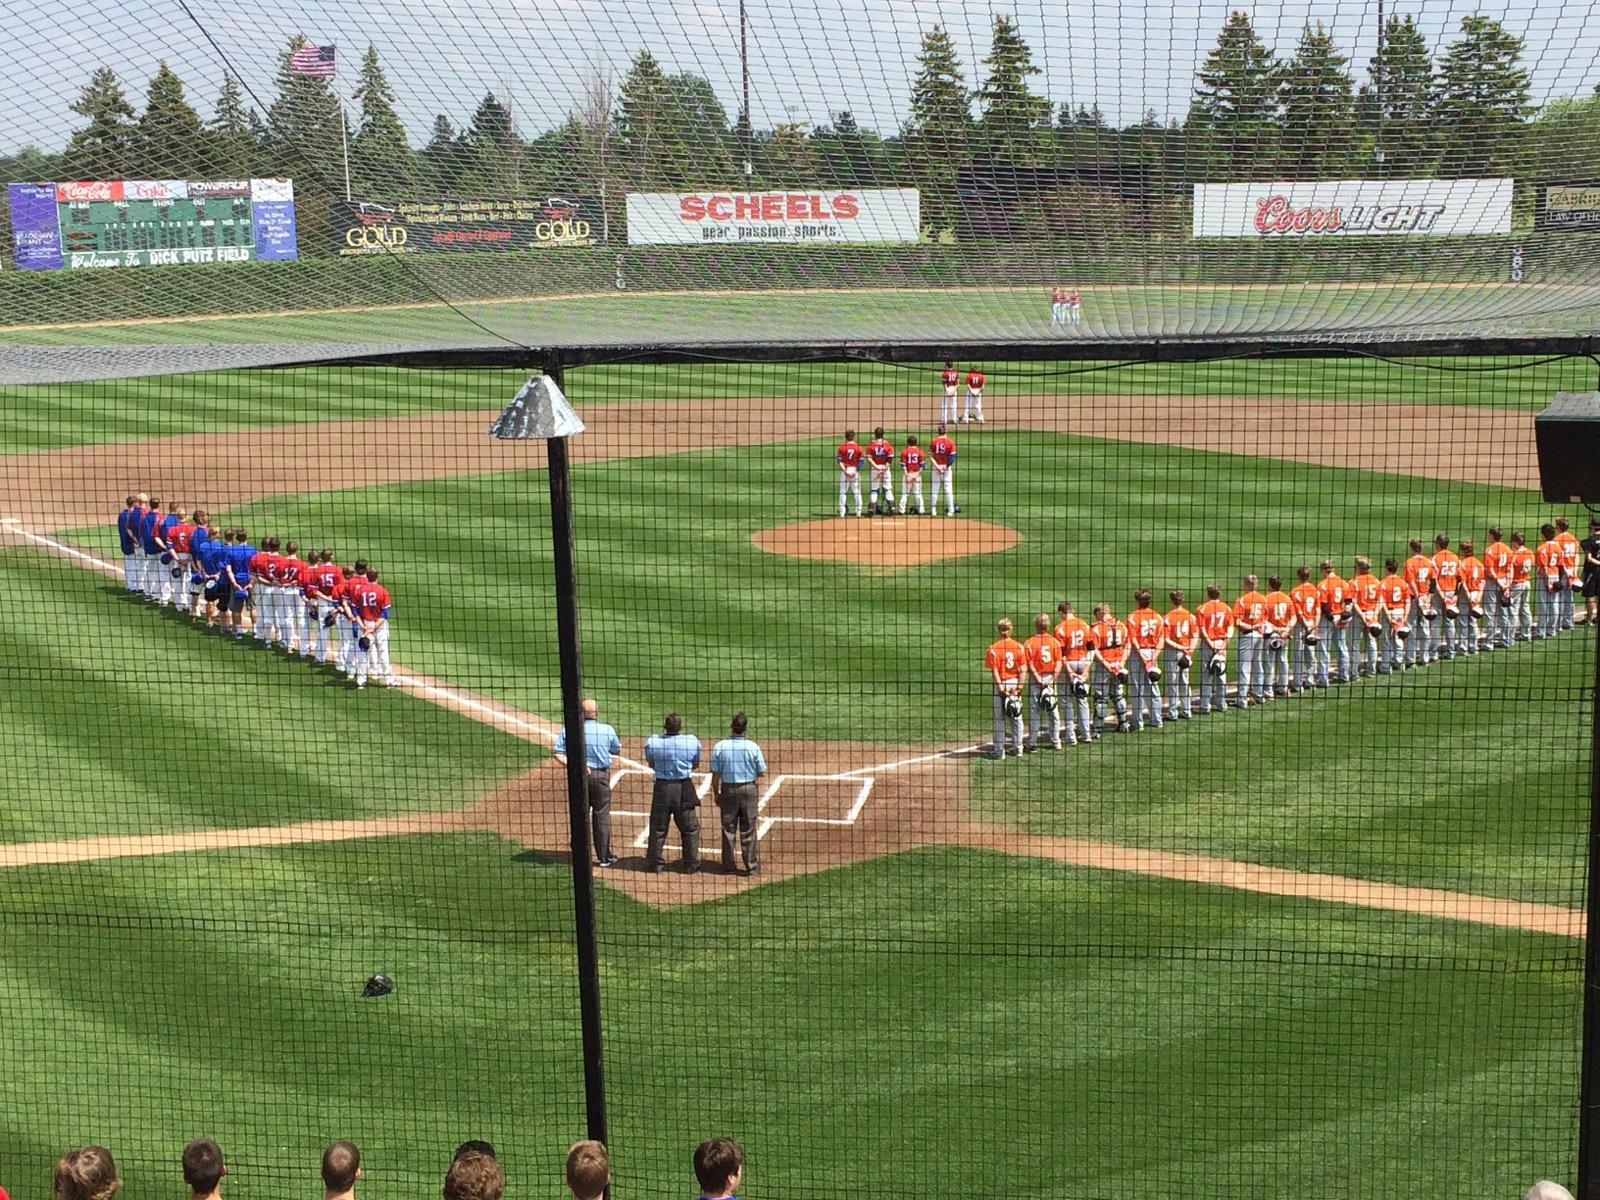 The 2015 season for the St. Cloud Apollo Eagles baseball team came to ...